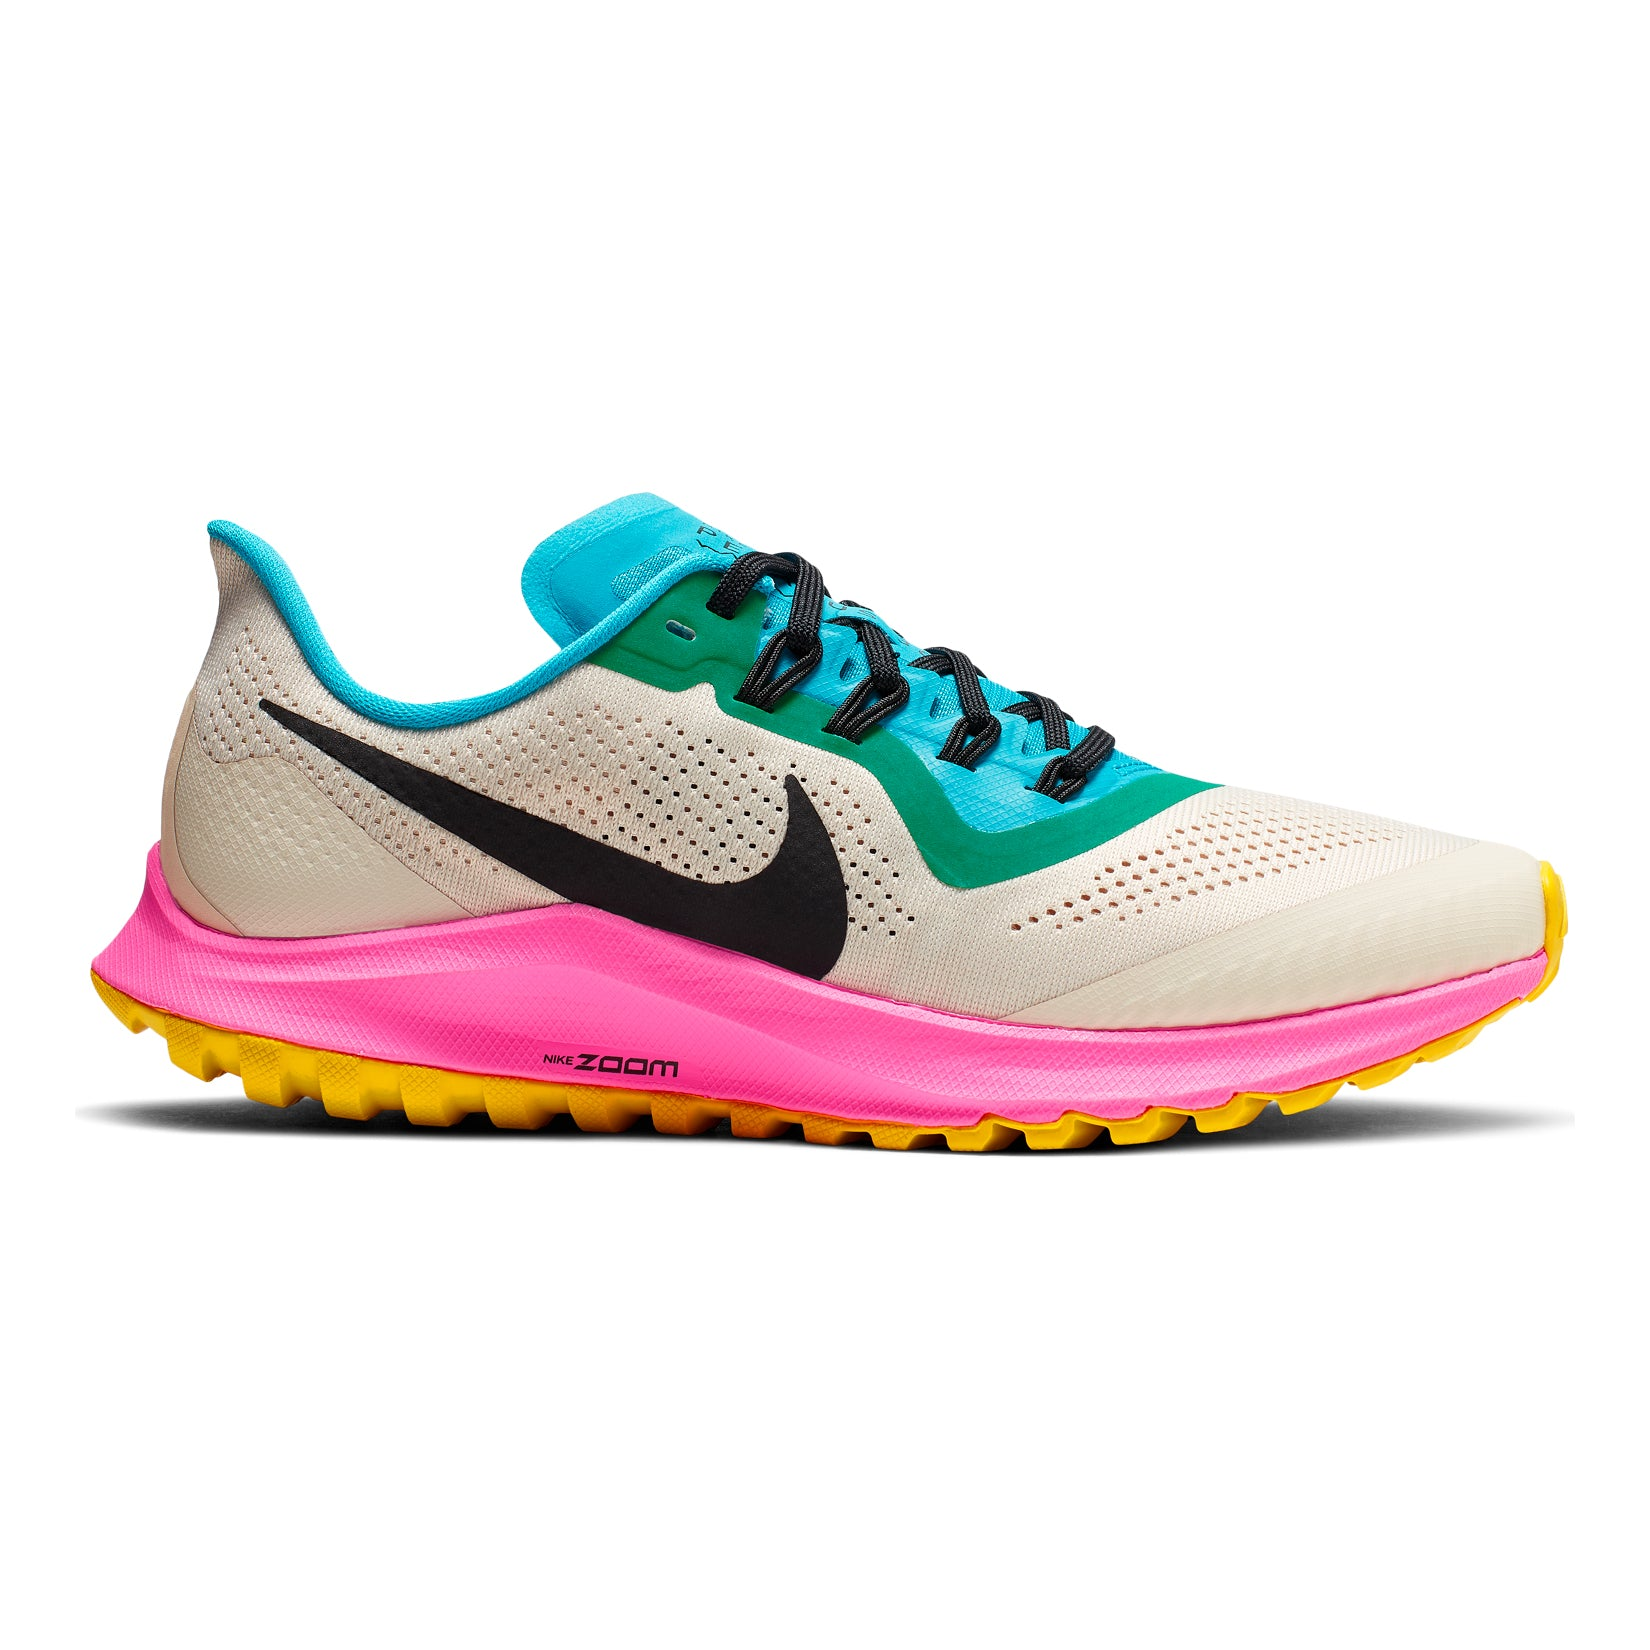 new product 4ced9 183db Women's Air Zoom Pegasus 36 Trail Running Shoe - Lt Orewood Brown/Black  Pink Blast